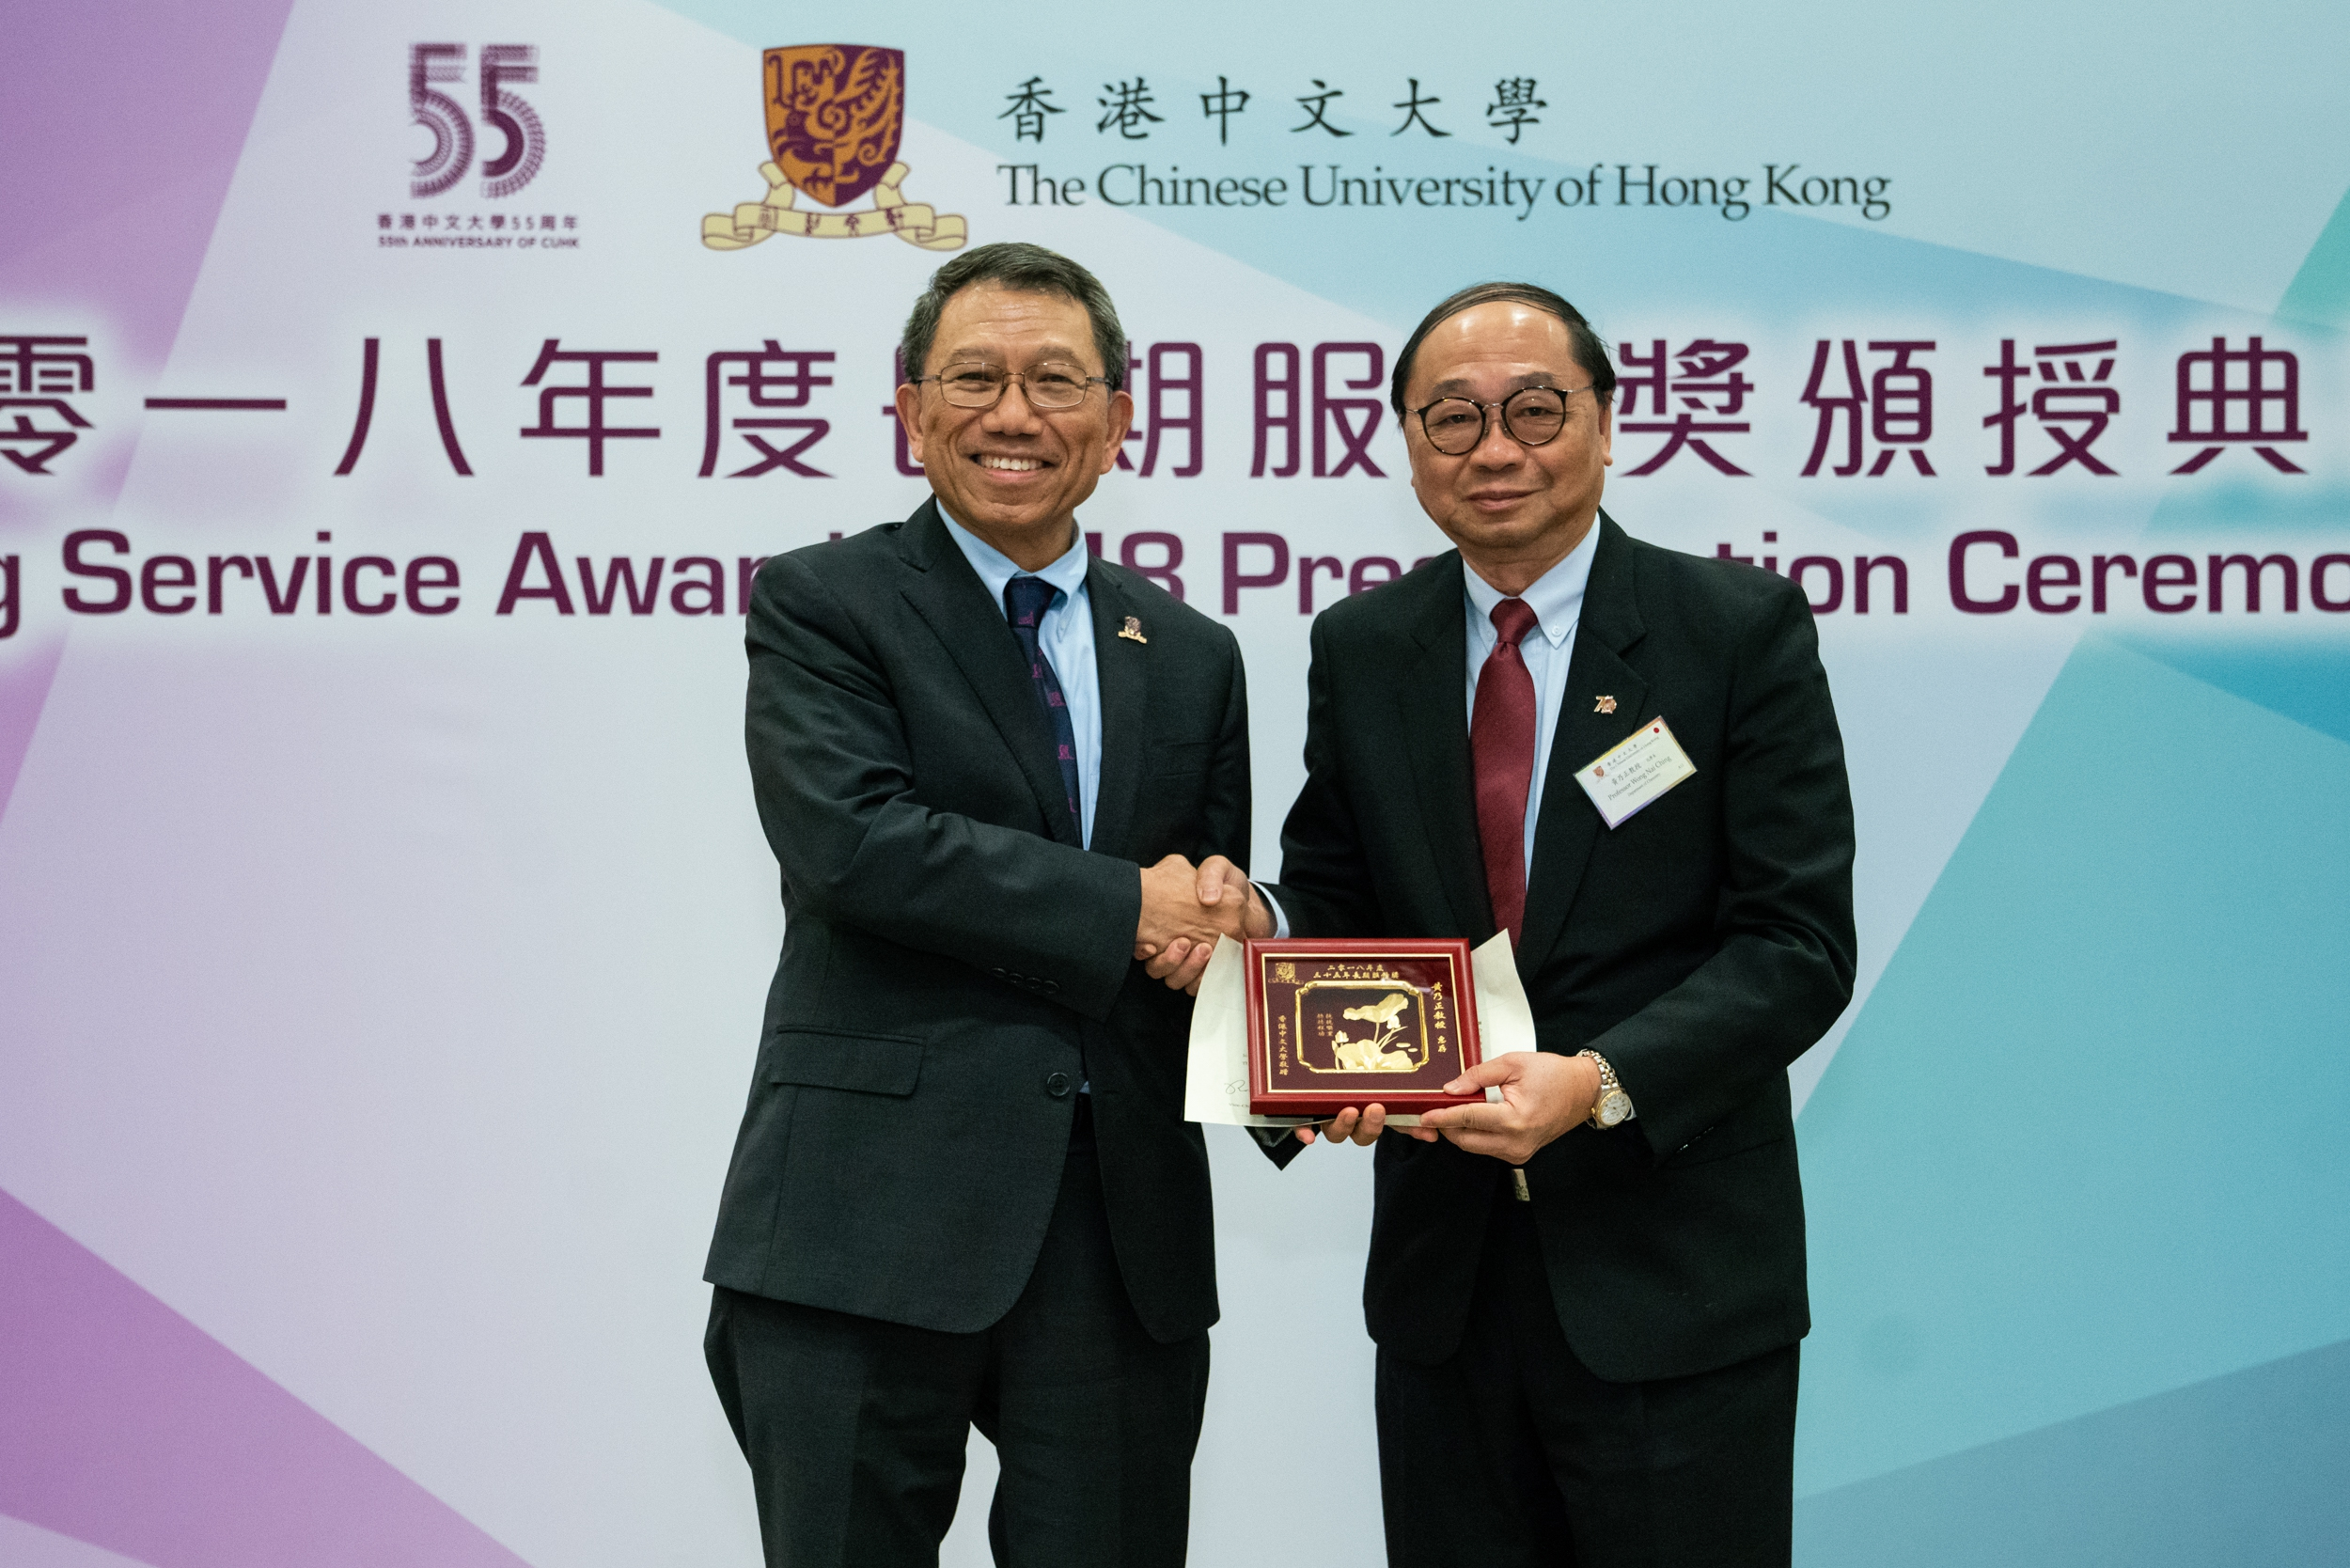 Professor Henry Wong receives the 35-year long service award.